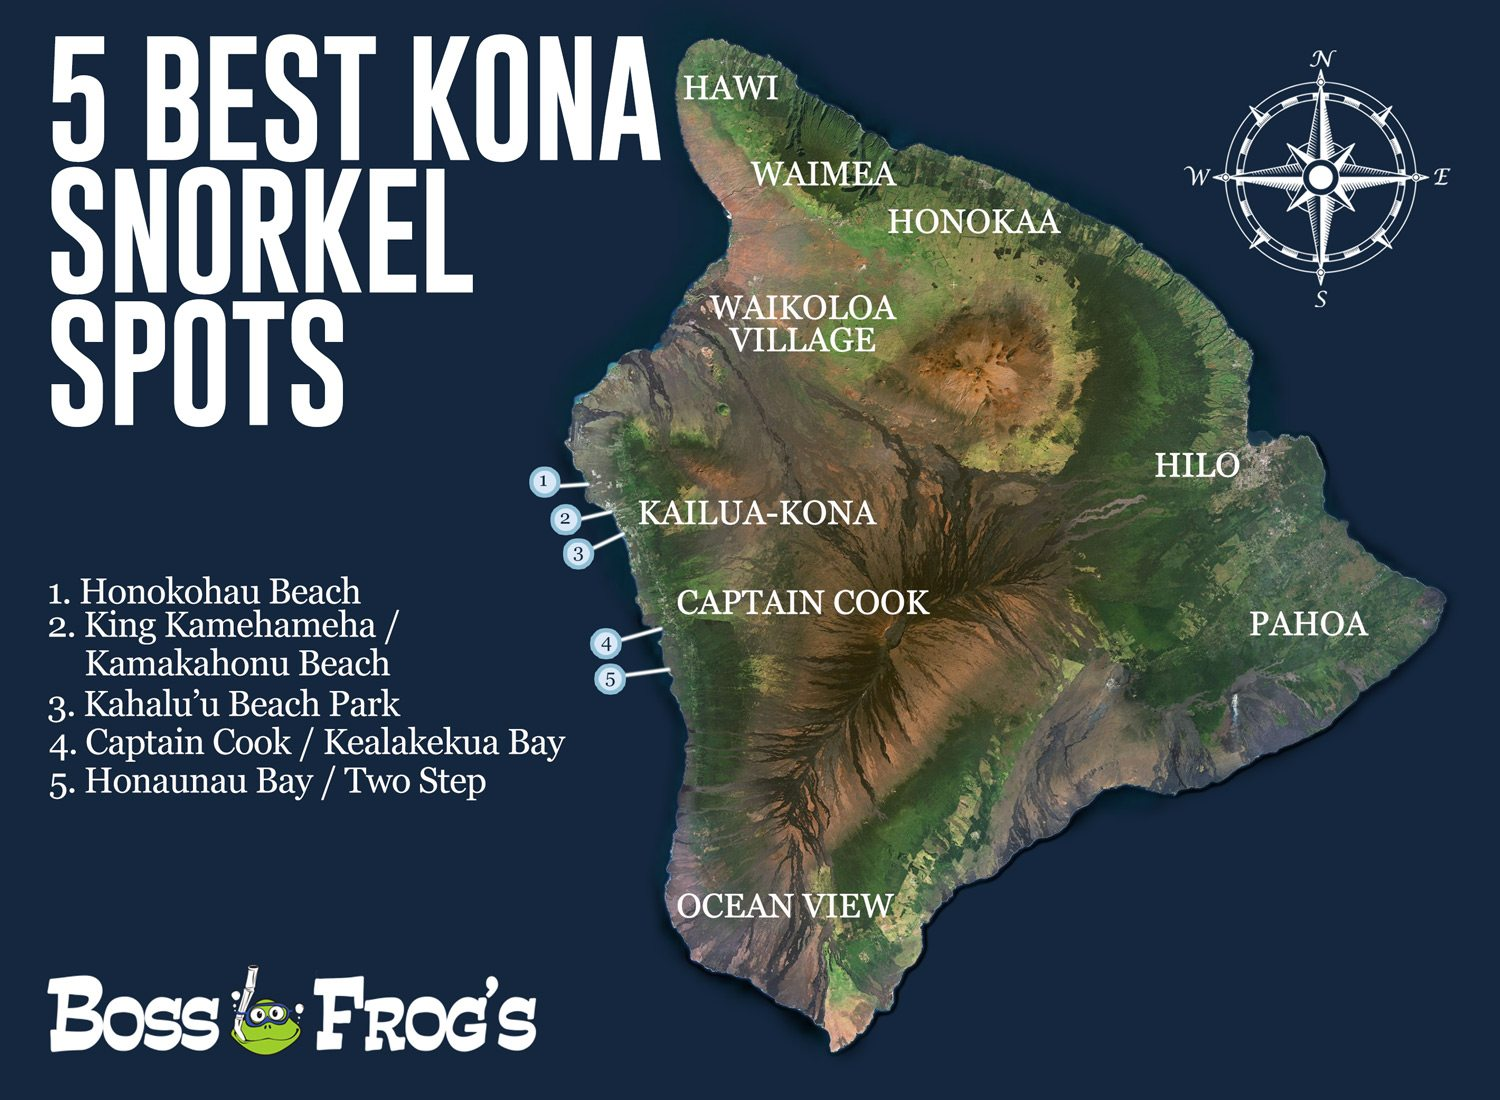 helicopter tour napali coast with 5 Best Kona Snorkeling Spots on Island Map as well How To See The Napali Coast additionally Kauai By Air   adult 2818  29 moreover Kauai Hawaiis Island Of Discovery further Sanuk Sandle Brown Hawaiian Islands.